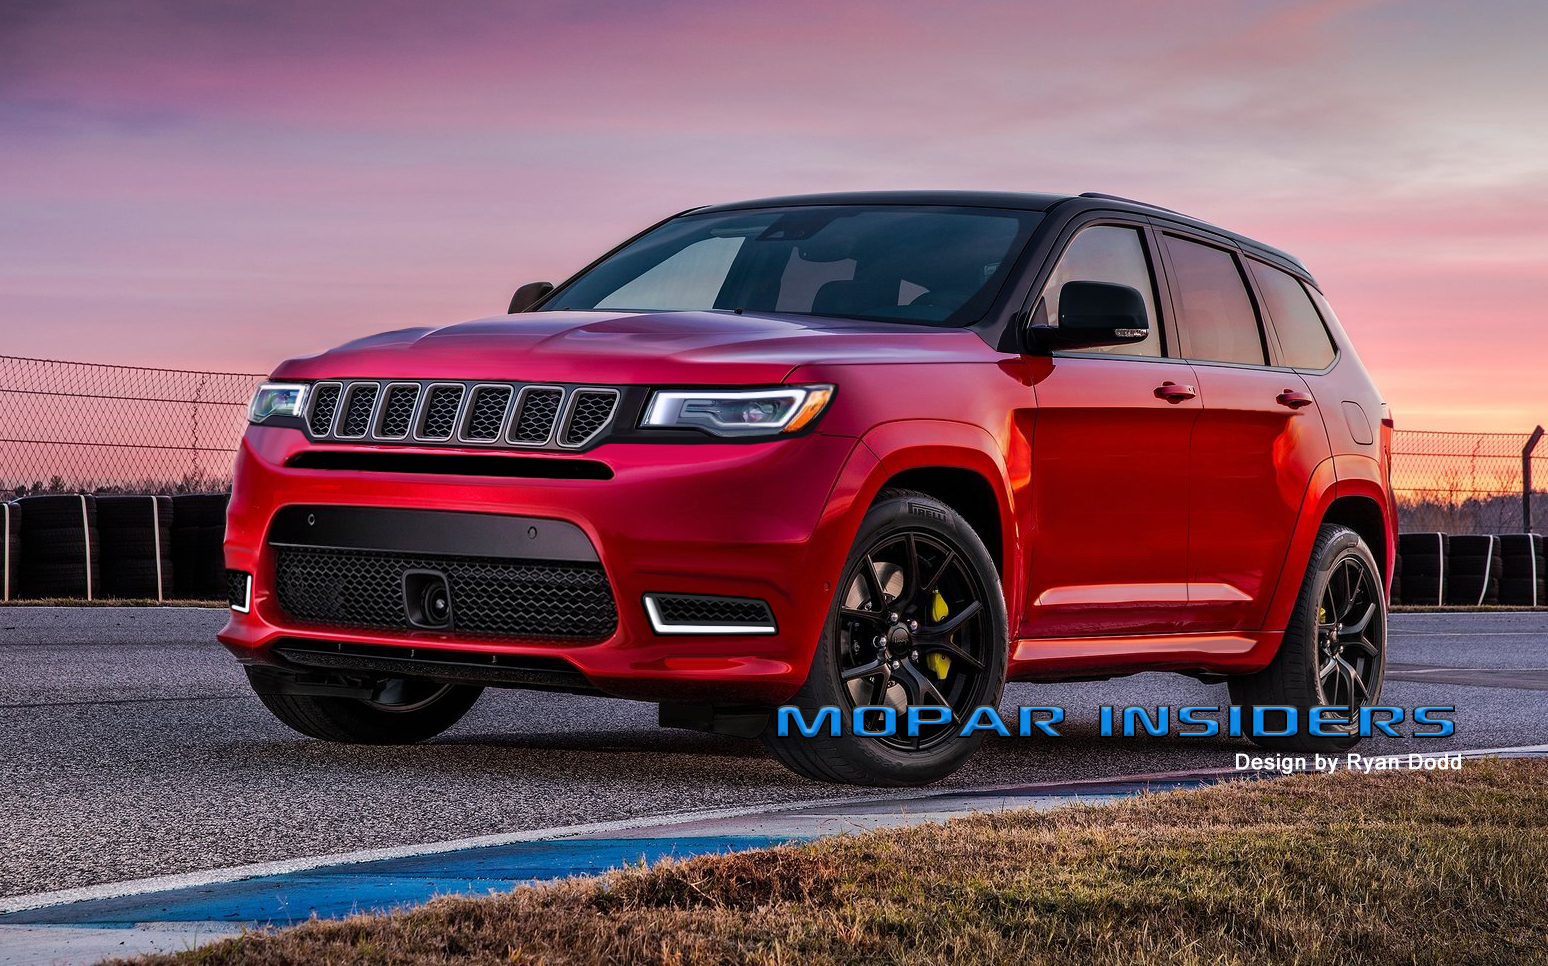 could this be the next generation jeep grand cherokee trackhawkcould this be the next generation jeep grand cherokee trackhawk? mopar insiders